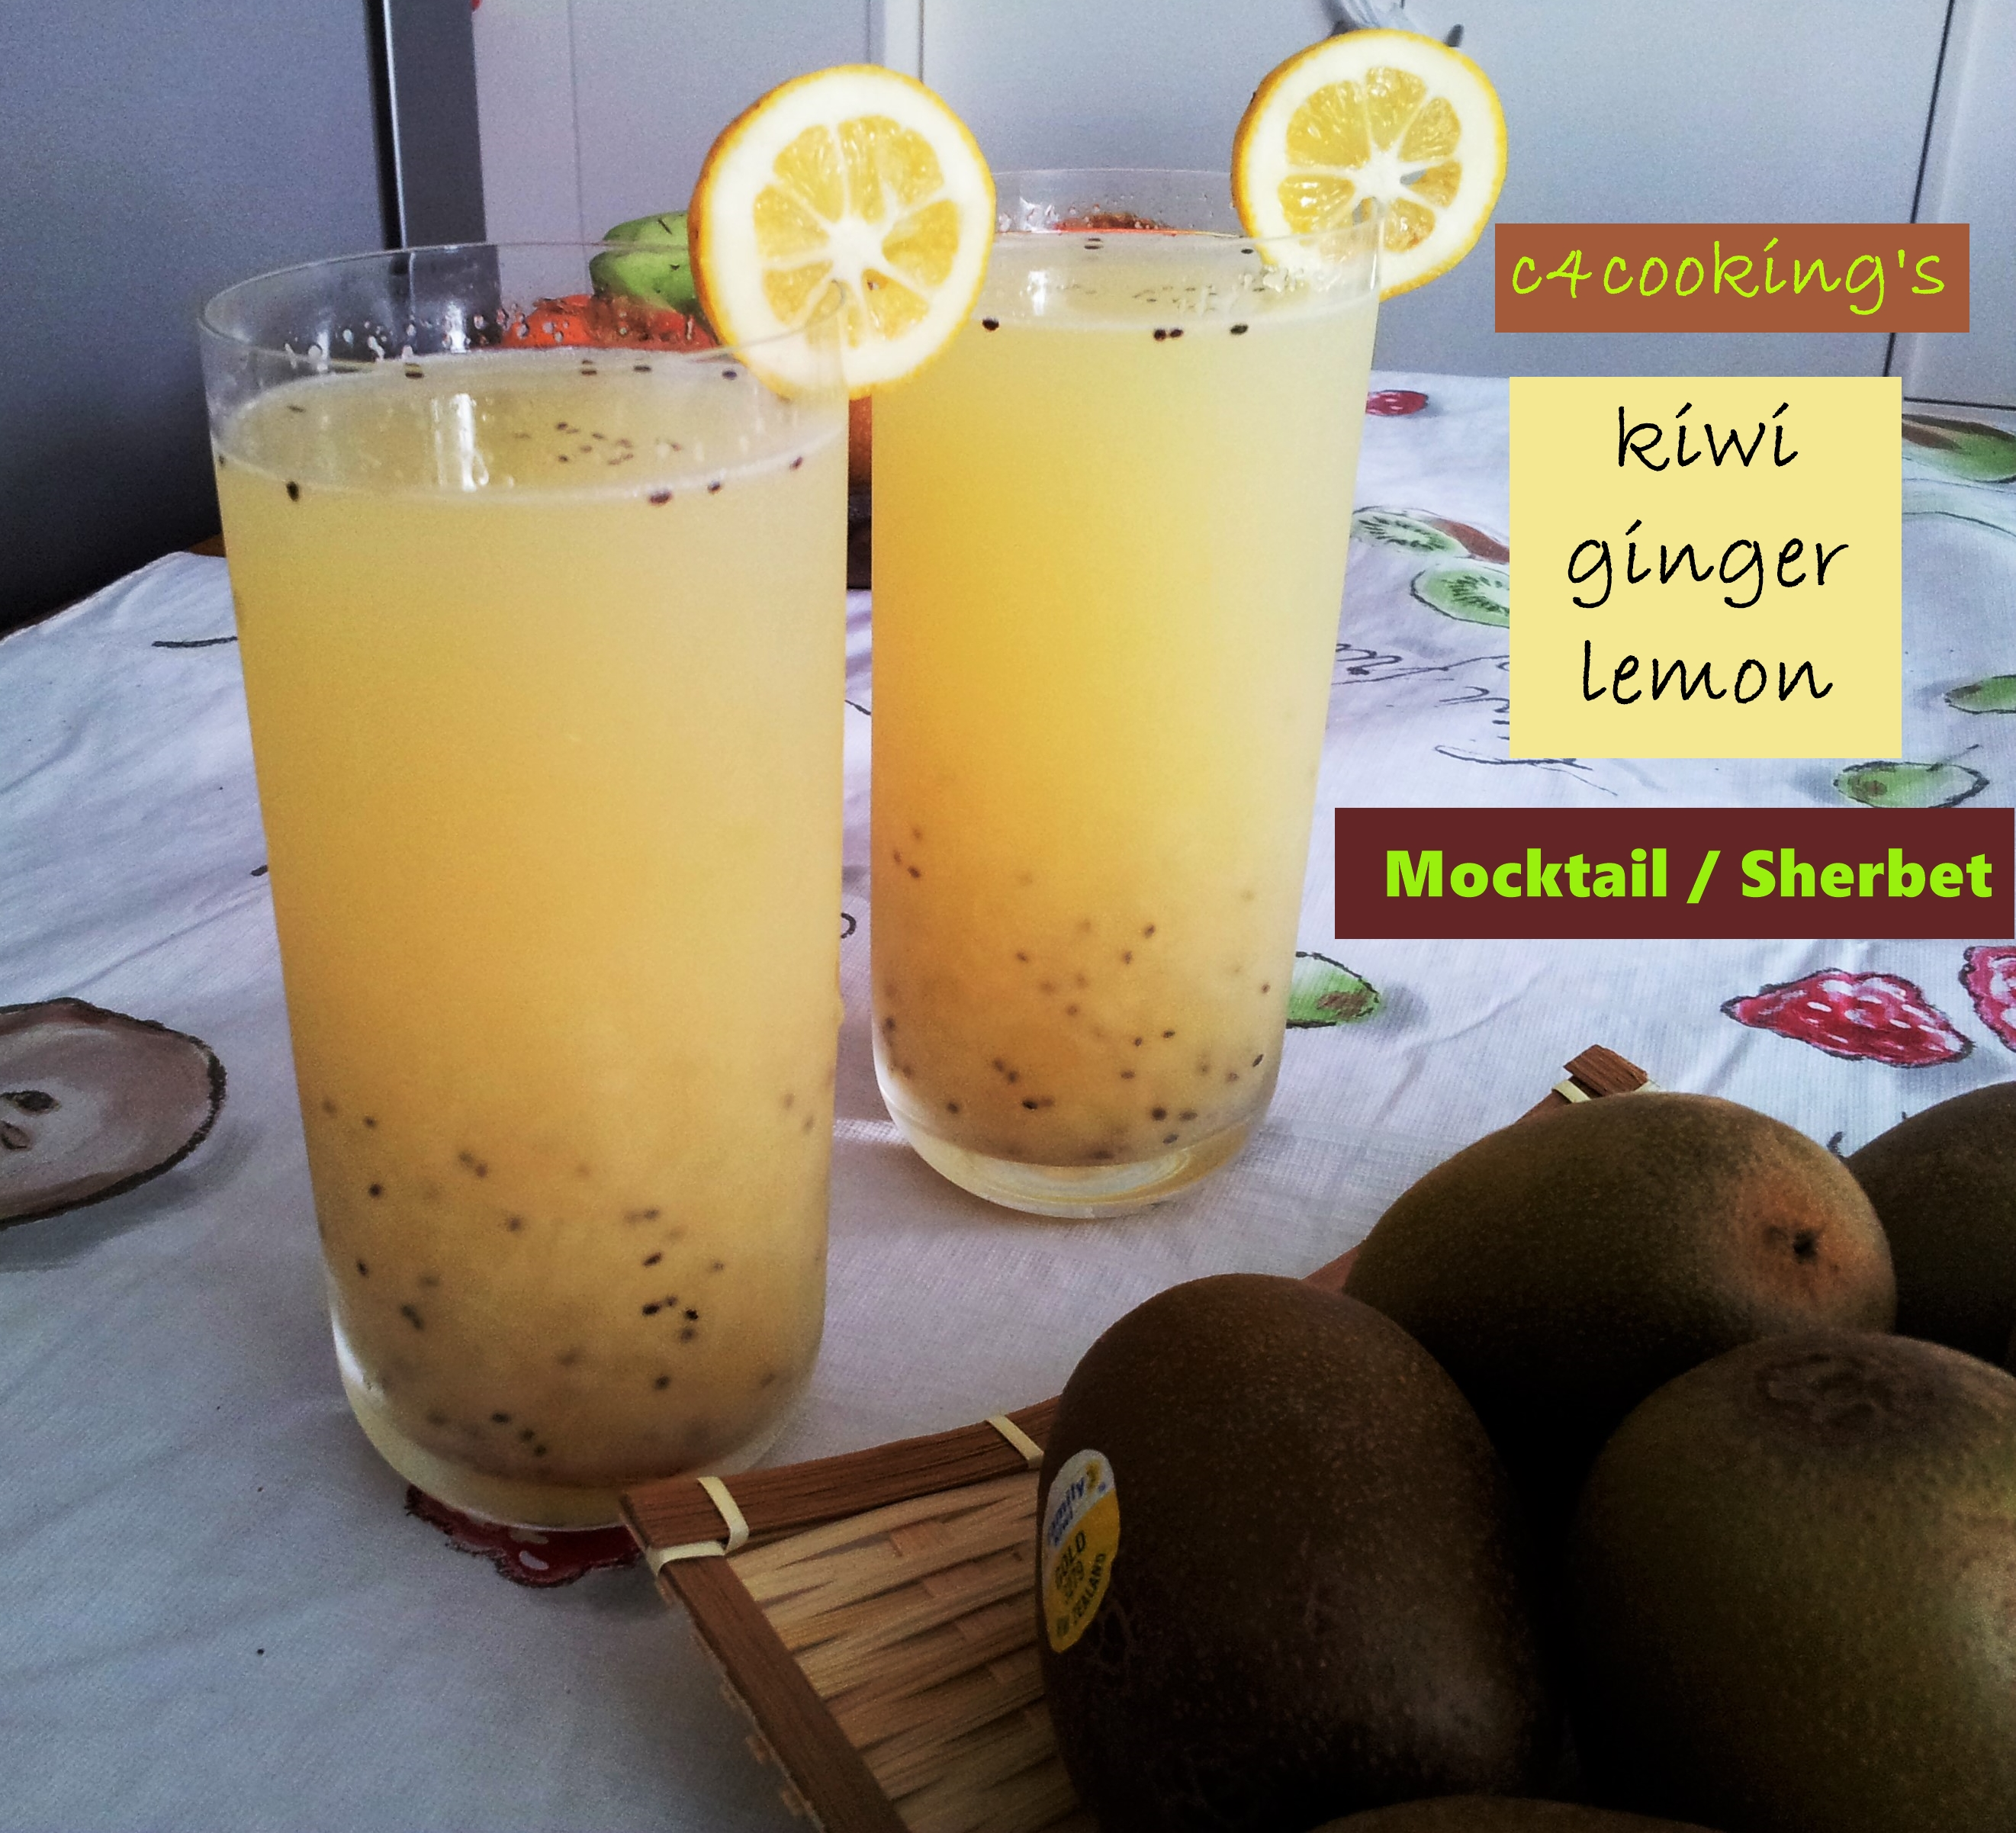 kiwi ginger lemon drink sherbet